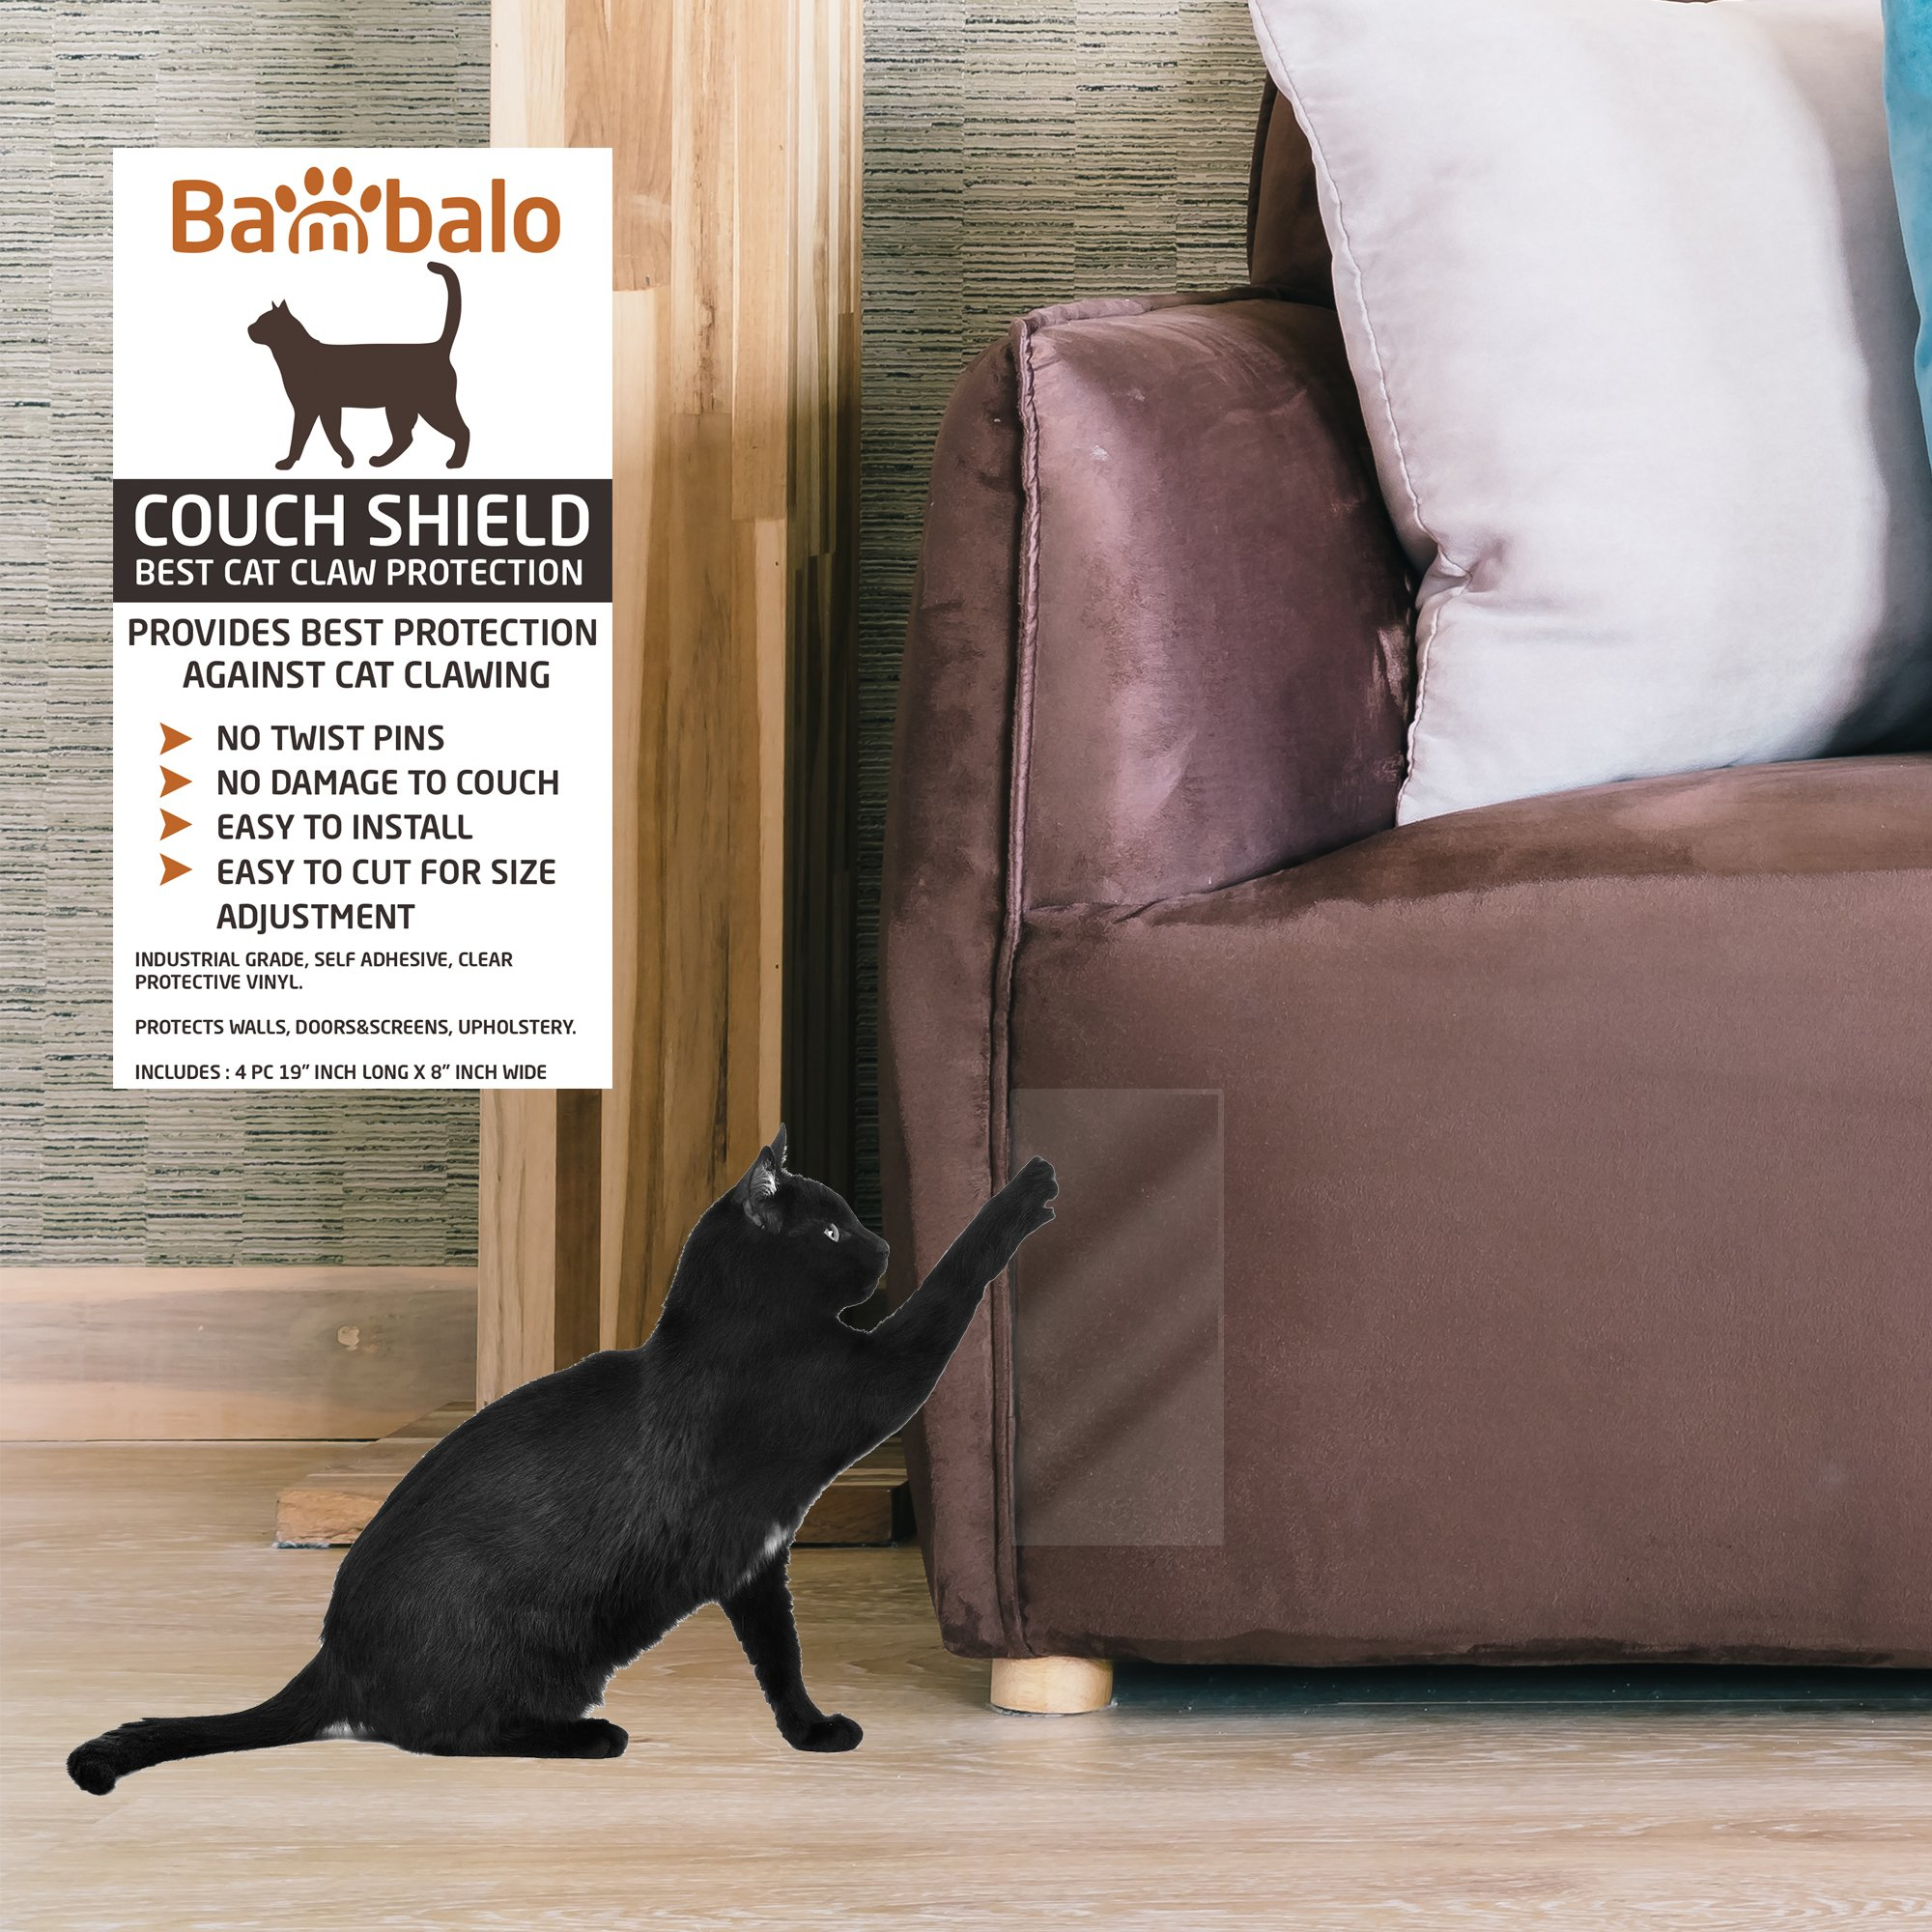 Bambalo Couch Shield upholstery guard, house furniture protection against cat clawing, Cat Scratching Training Aids, tape. Include - 4 PC Self adhesive sheets protectors 19'' inch long x 8'' inch wide by Bambalo (Image #1)